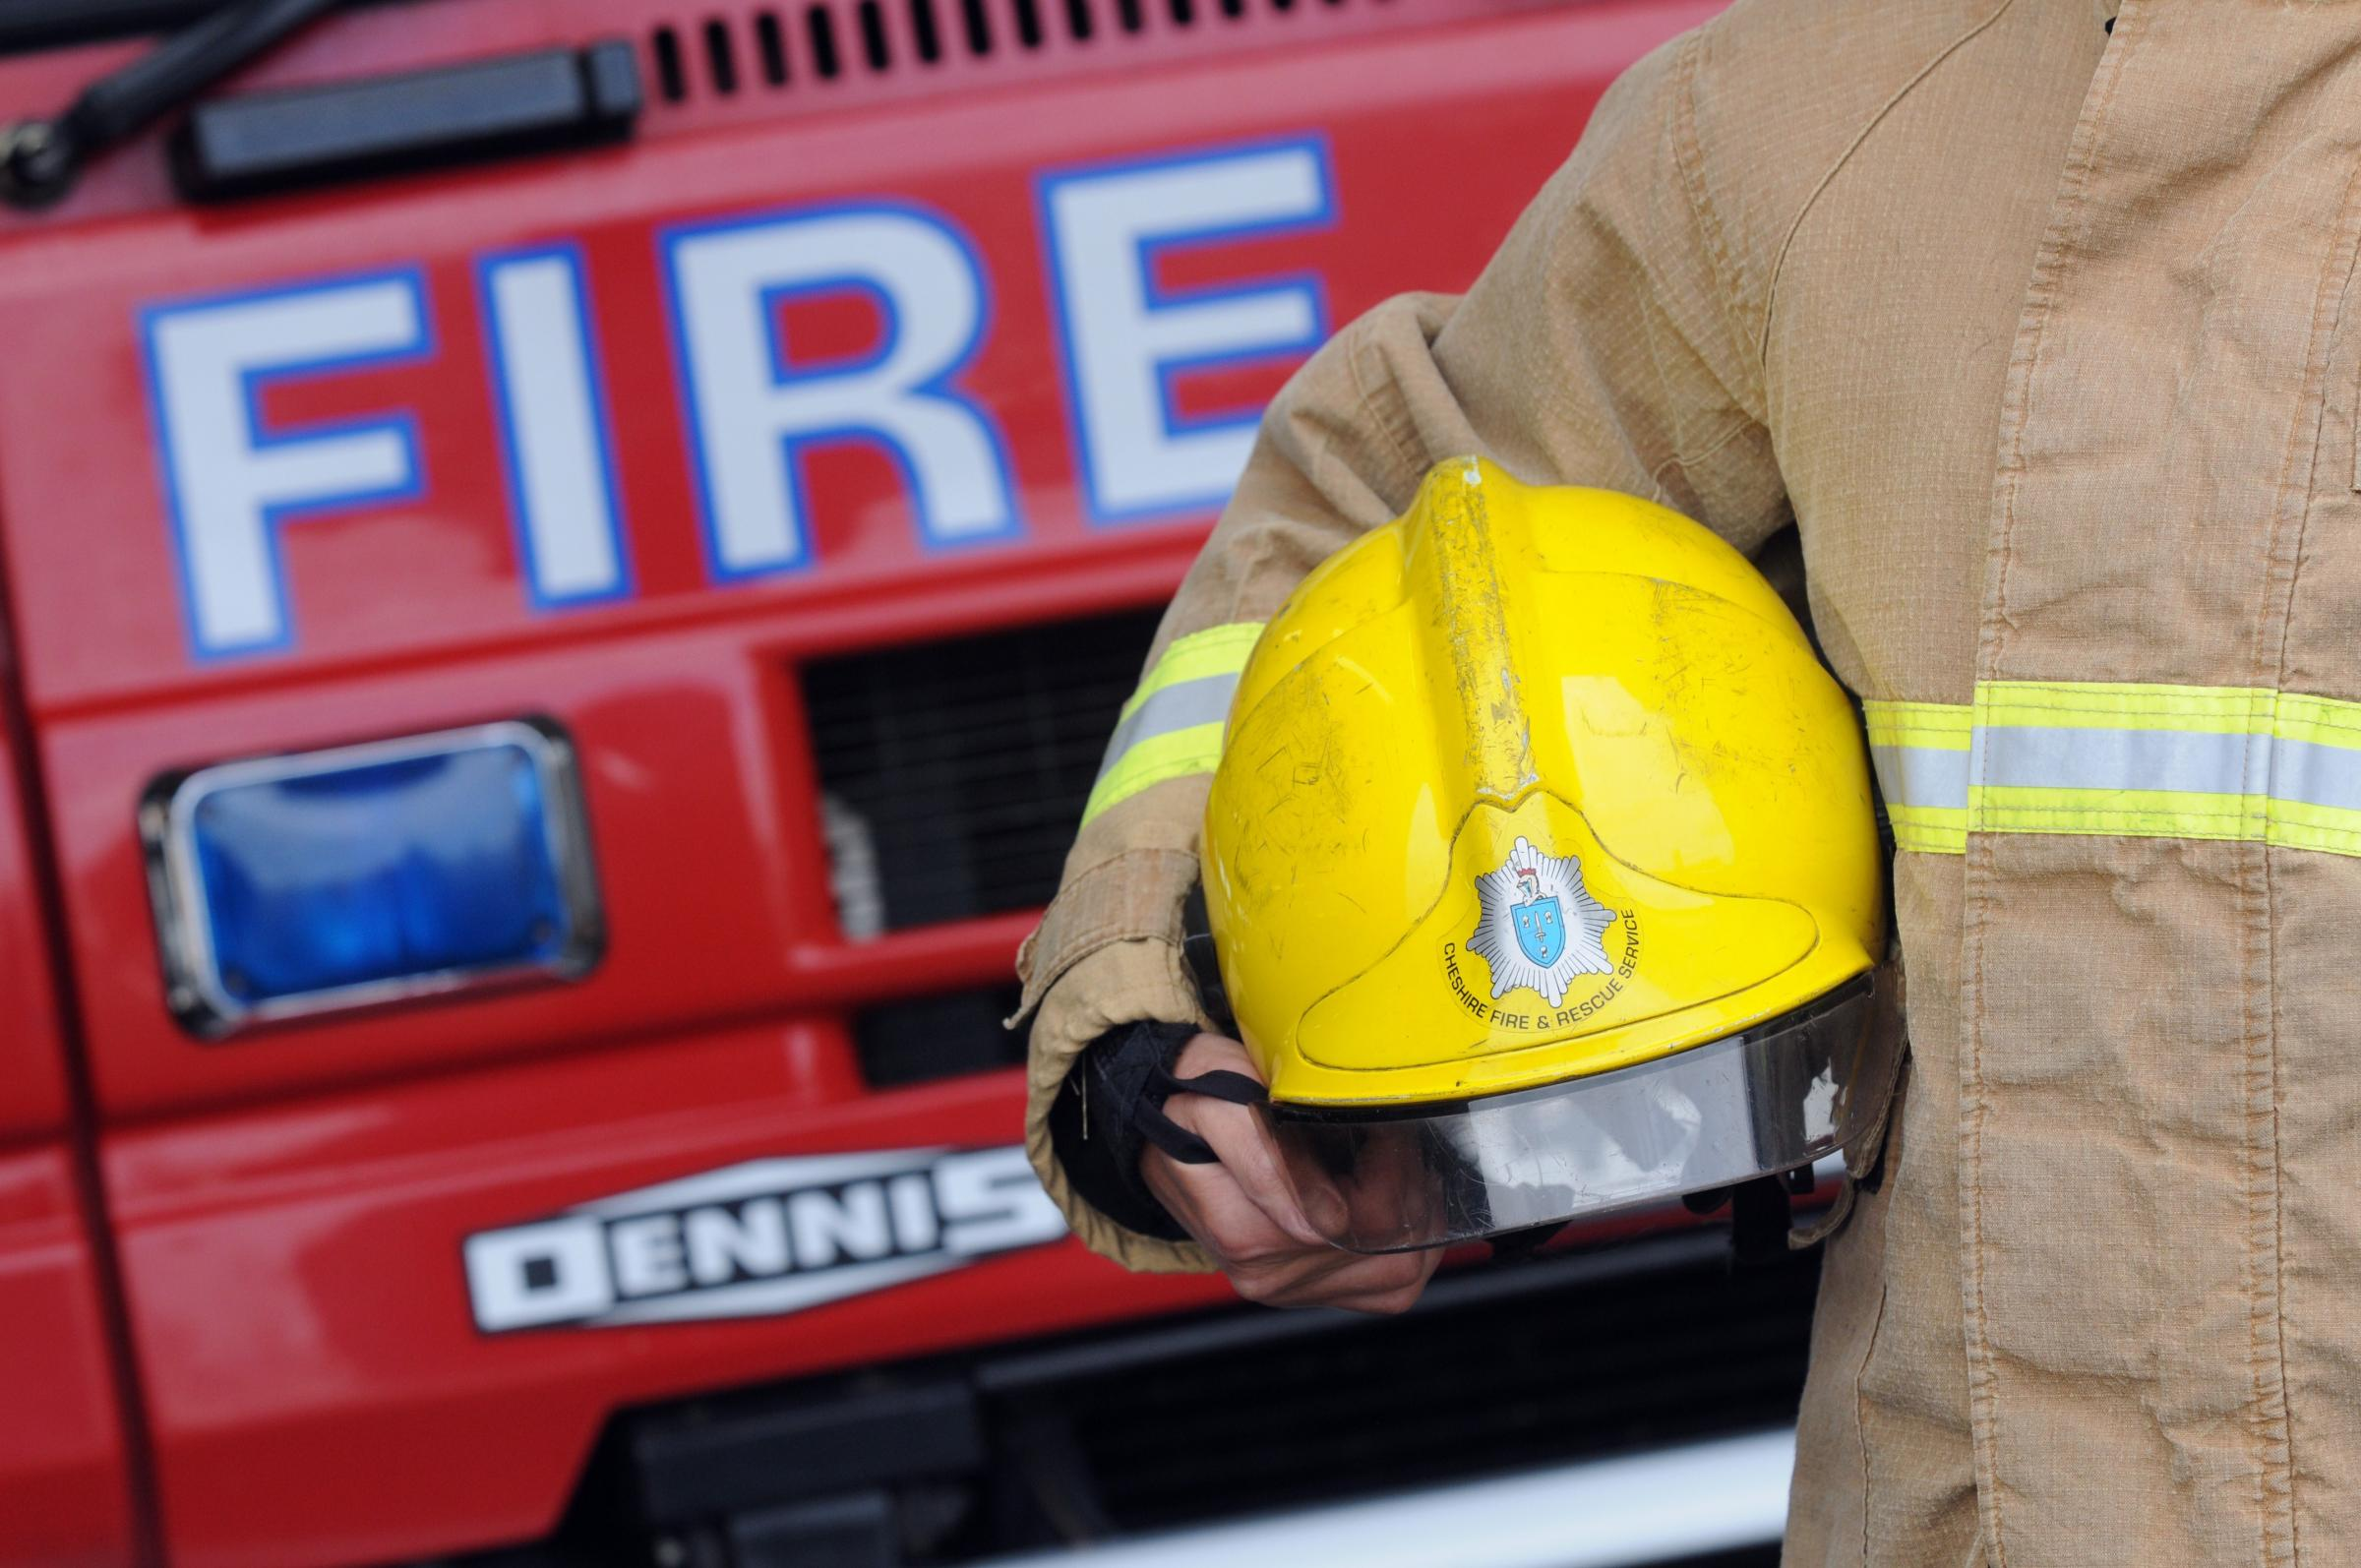 Two treated by paramedics following Ellesmere Port bedroom blaze